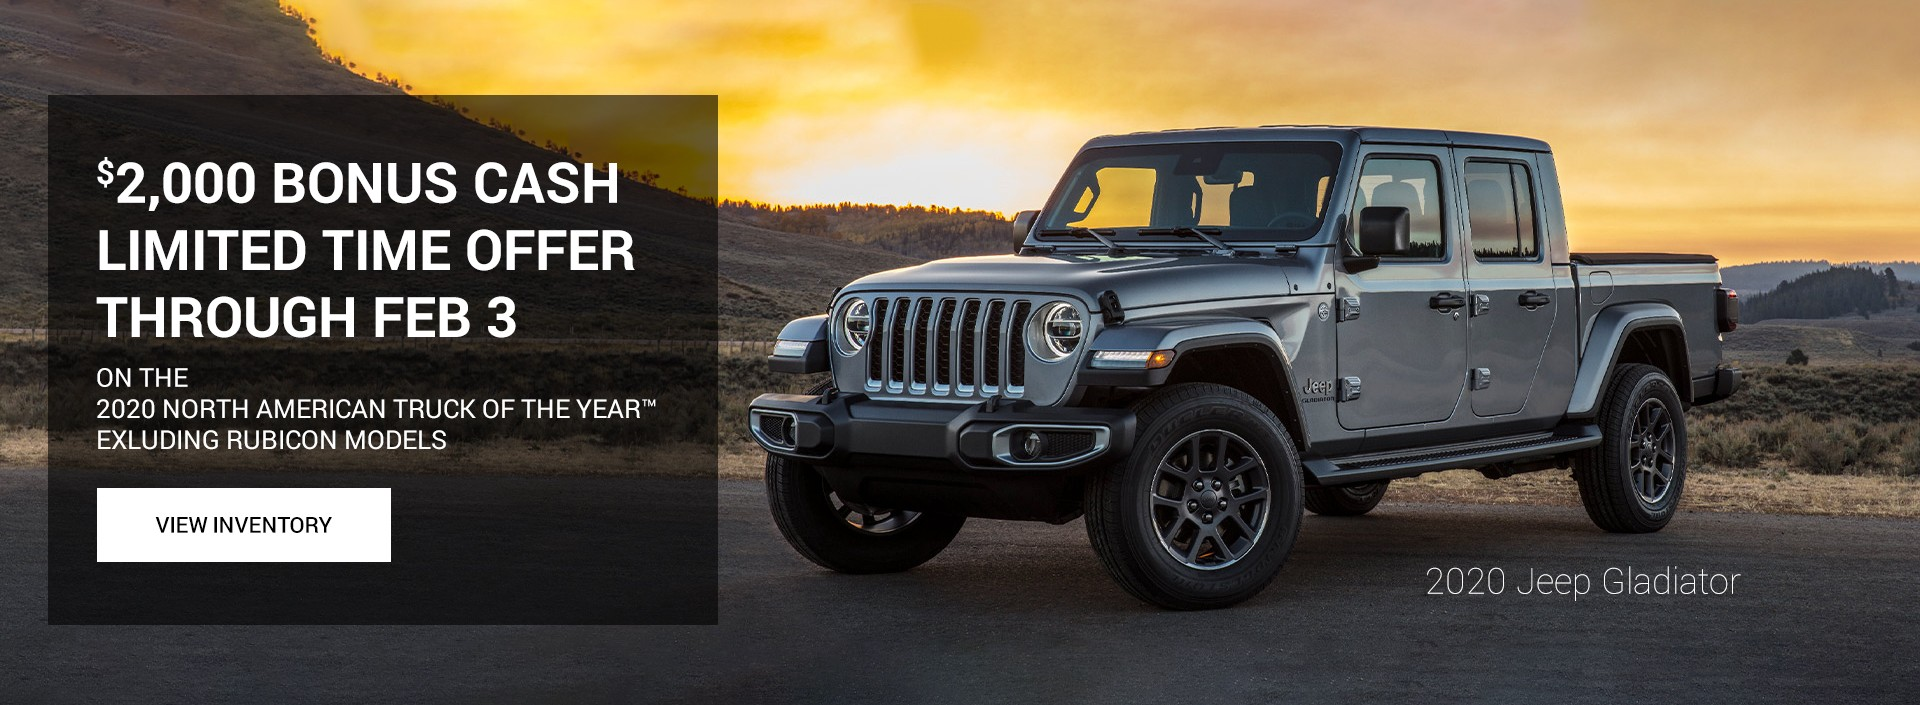 Jeep Gladiator $2000 Limited Offer